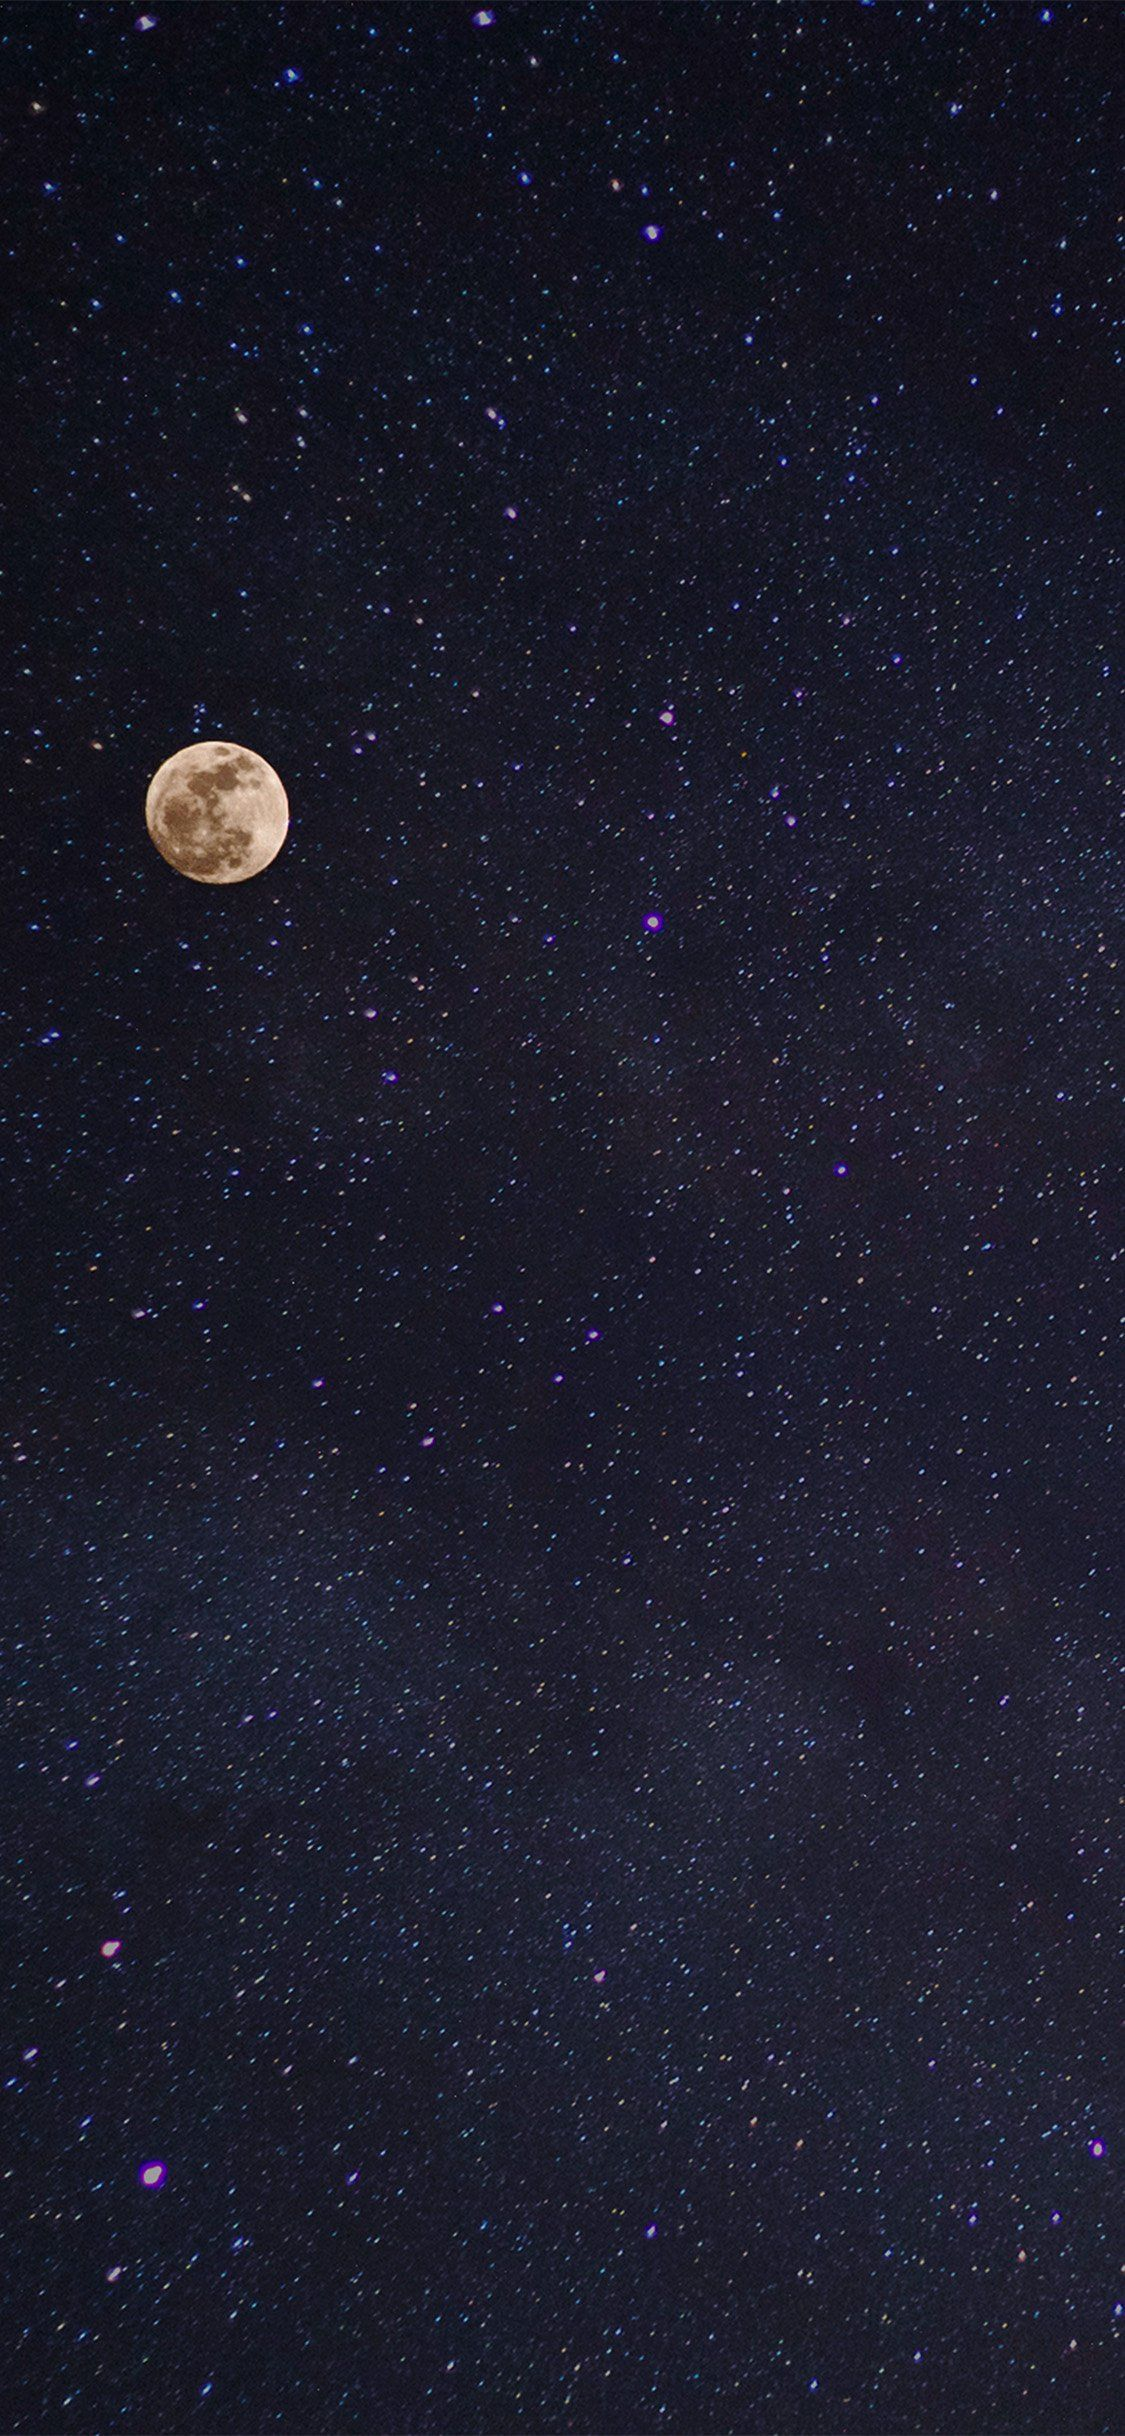 Https All Images Net Wallpaper Iphone Nature Hd 446 Wallpaper Iphone Nature Hd Iphone Wallpaper Night Sky Iphone Wallpaper Night Moon And Stars Wallpaper